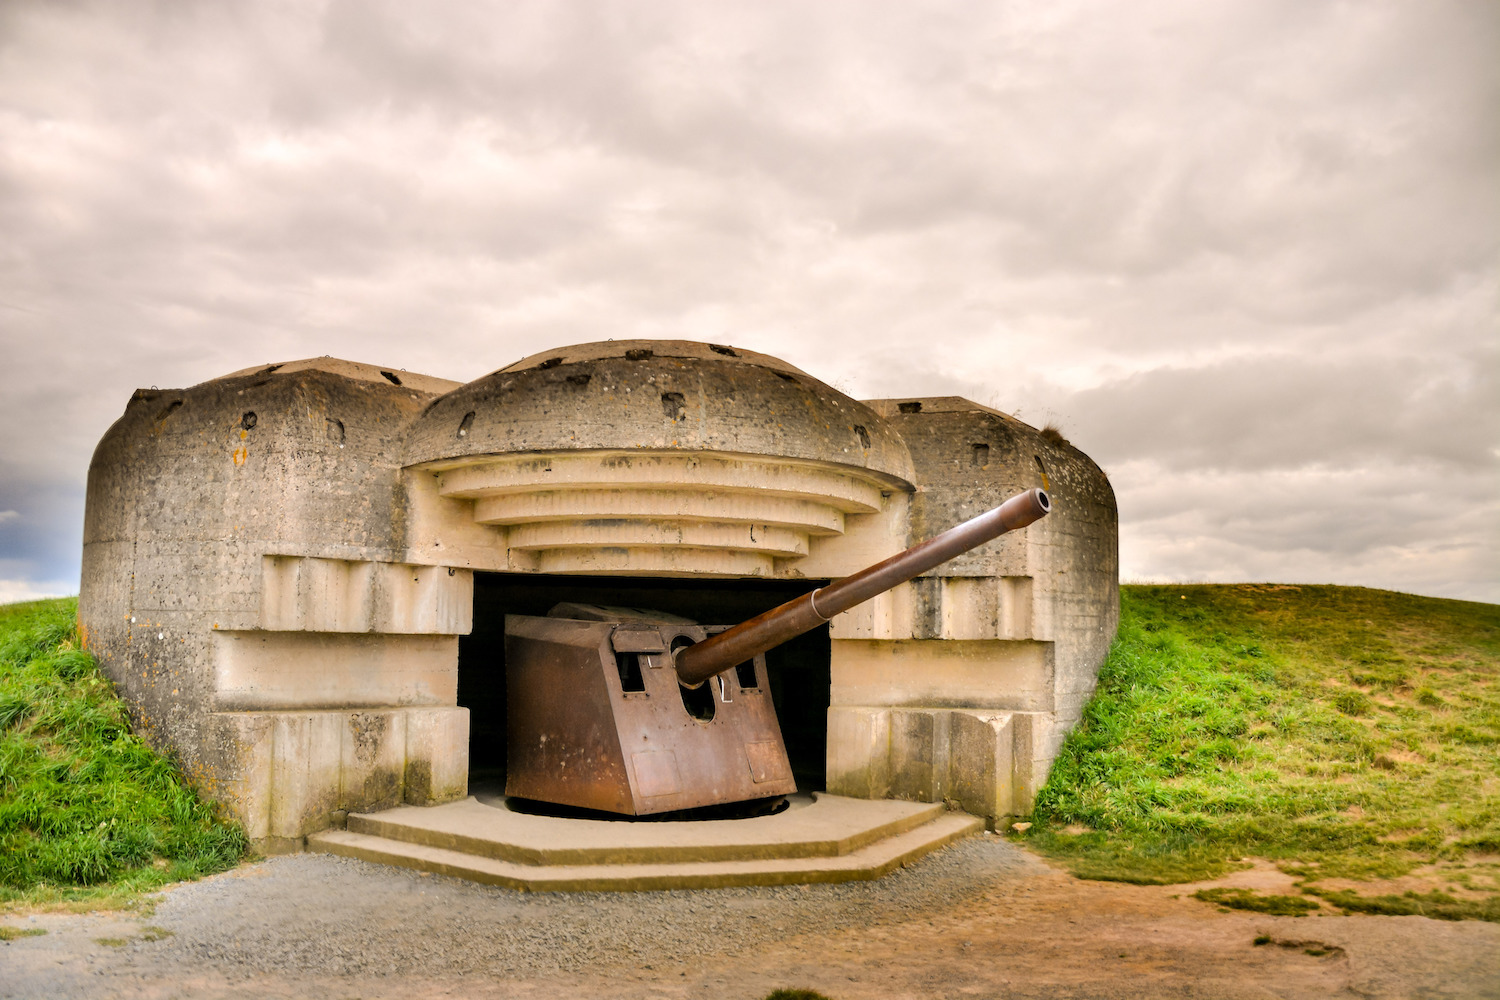 German bunker on the French coast in Normandy